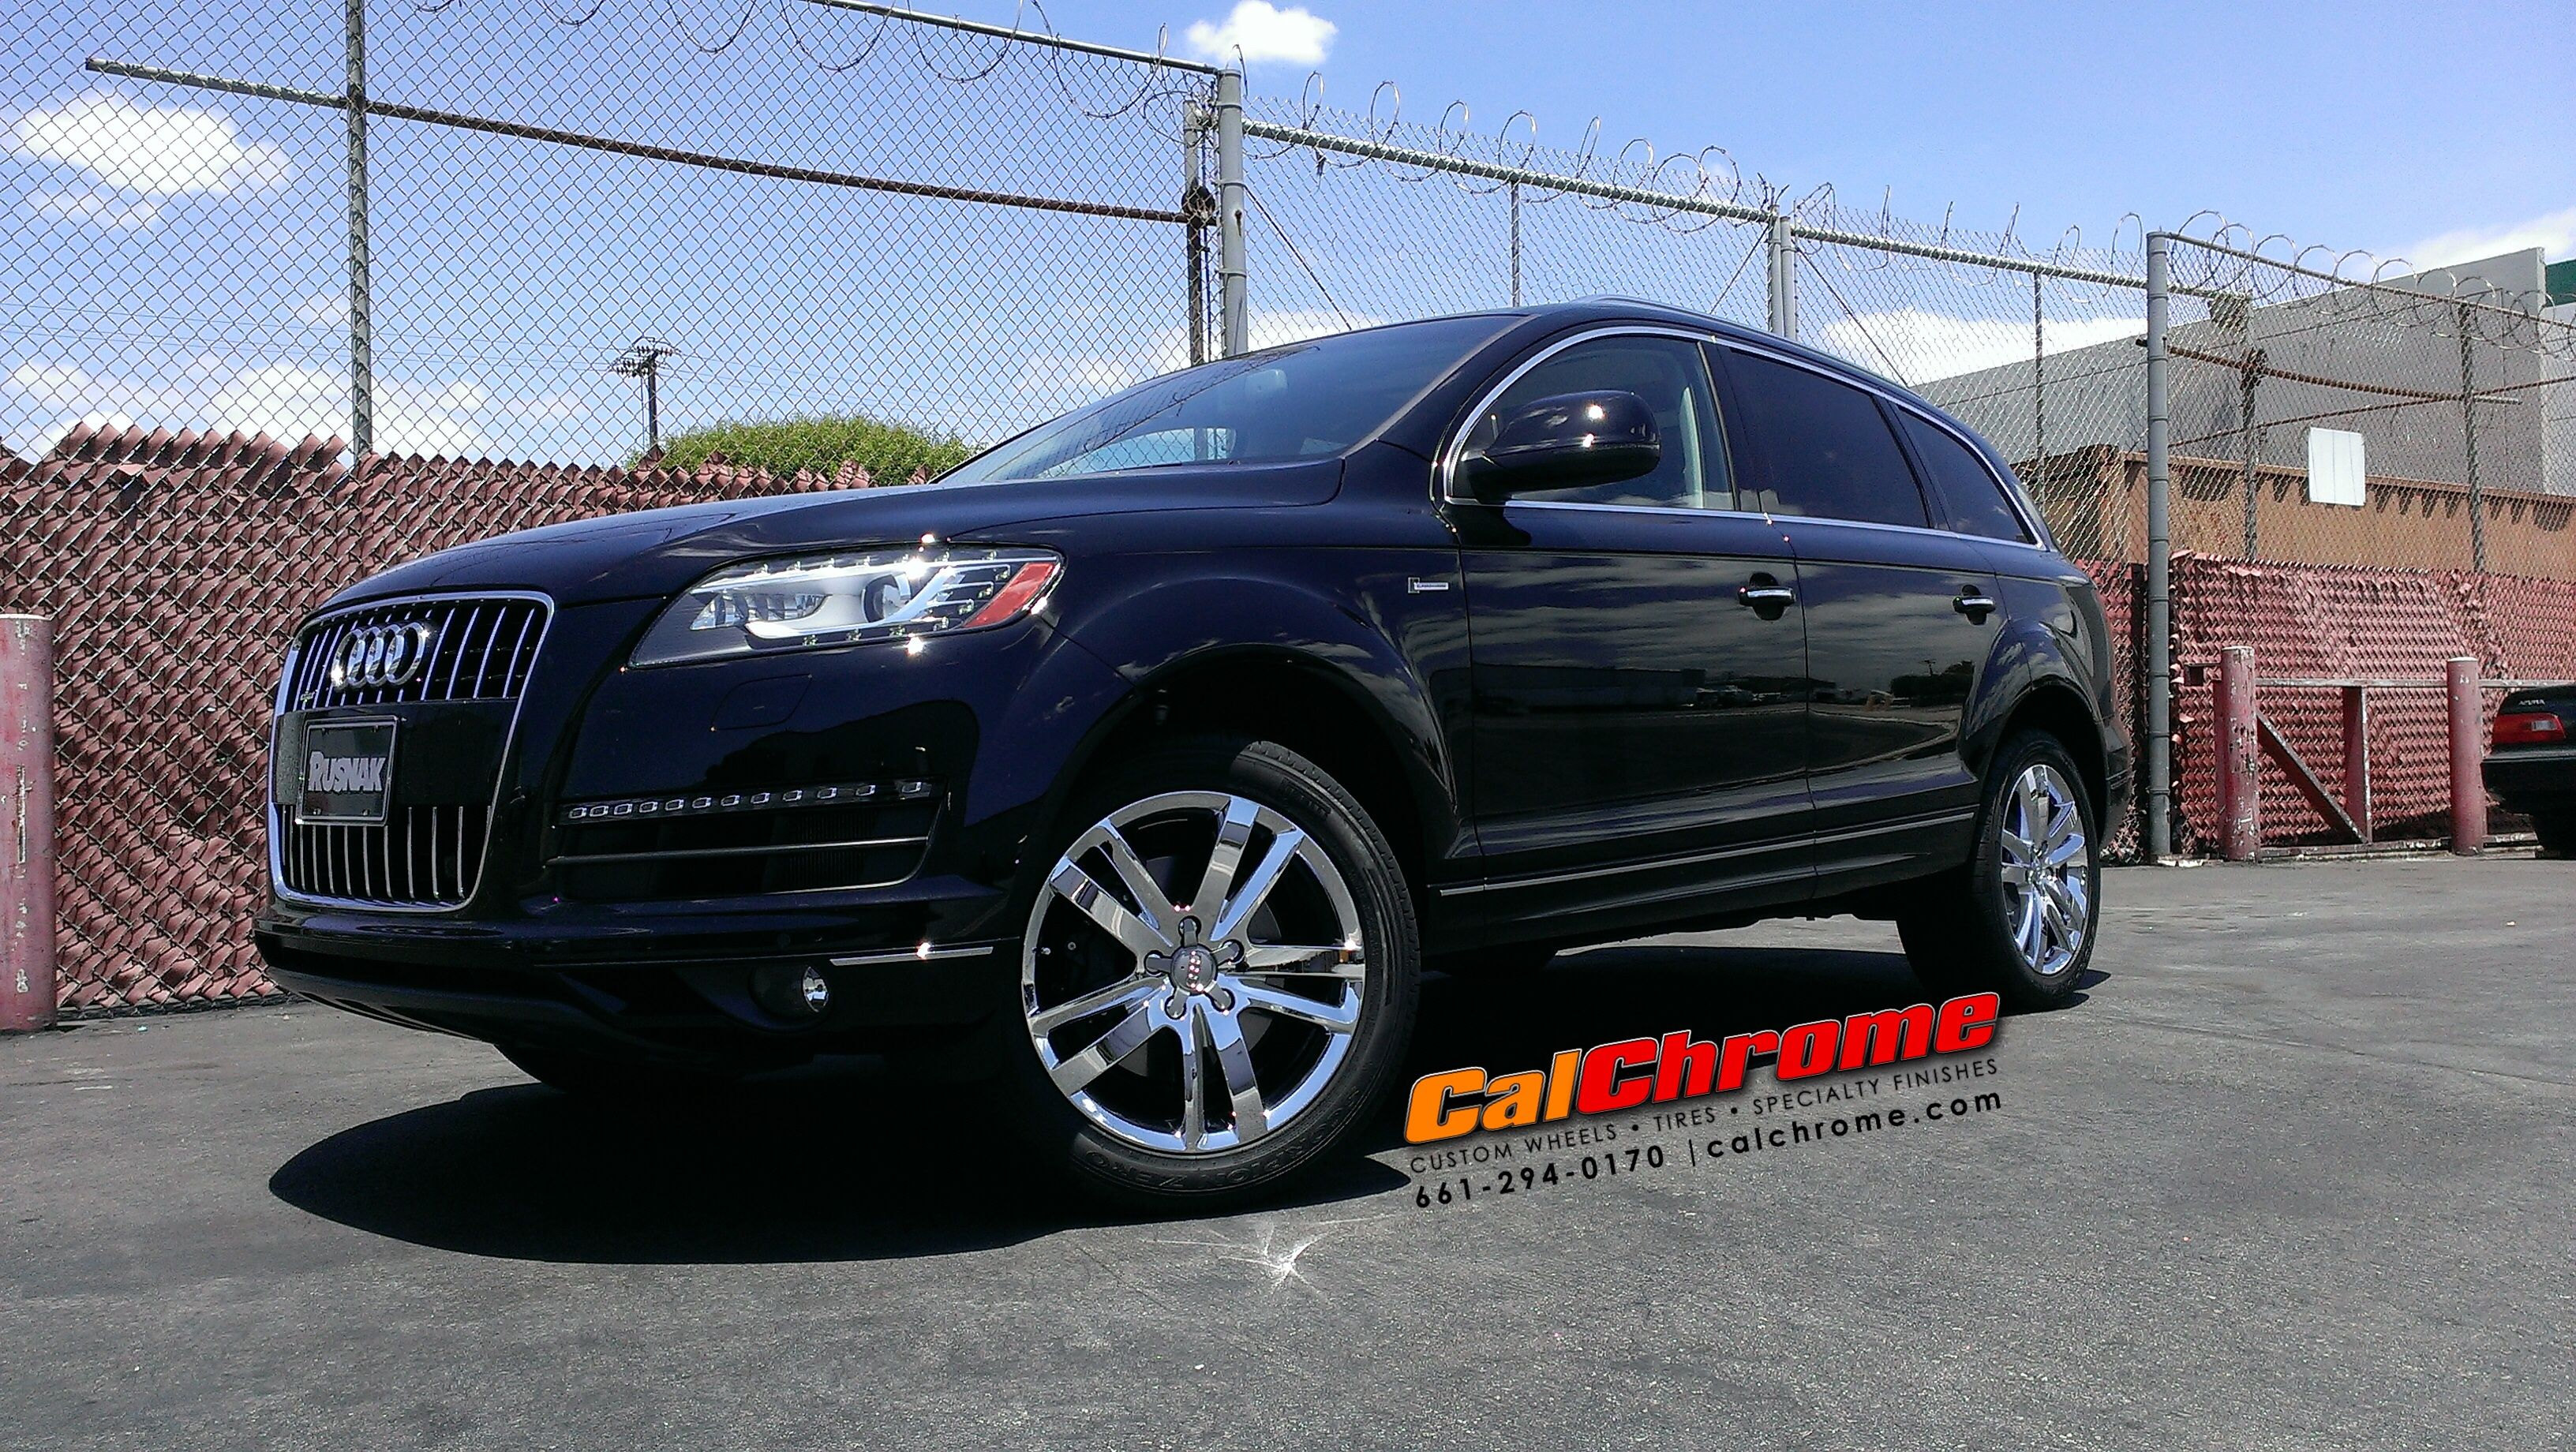 Audi Q7 With 19 Chrome Plated Wheels Chromemywheels